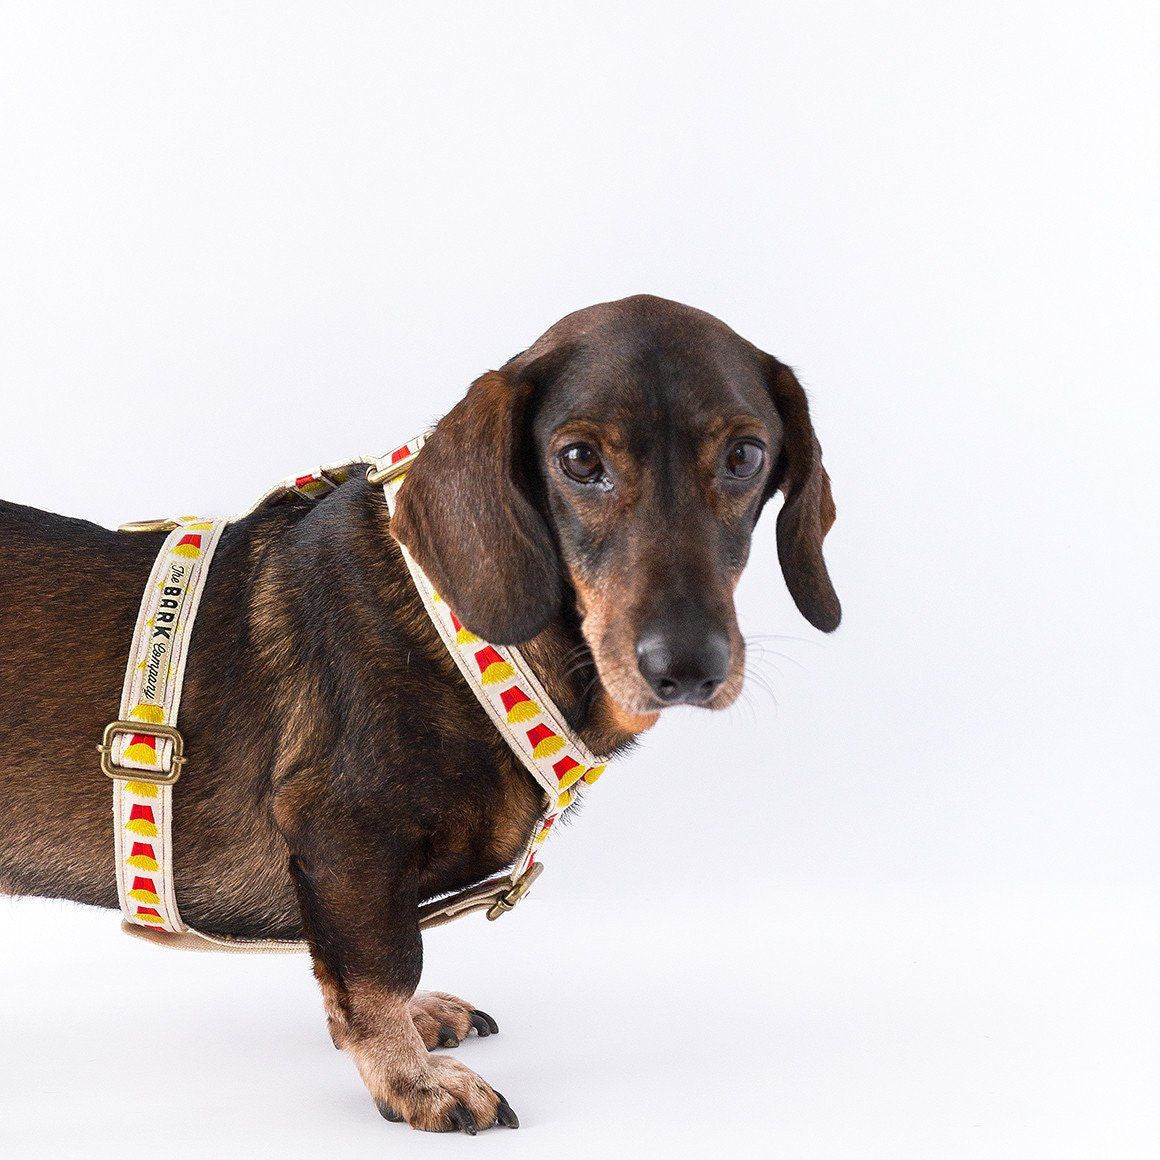 Fries dog harness from The Bark Co - 1